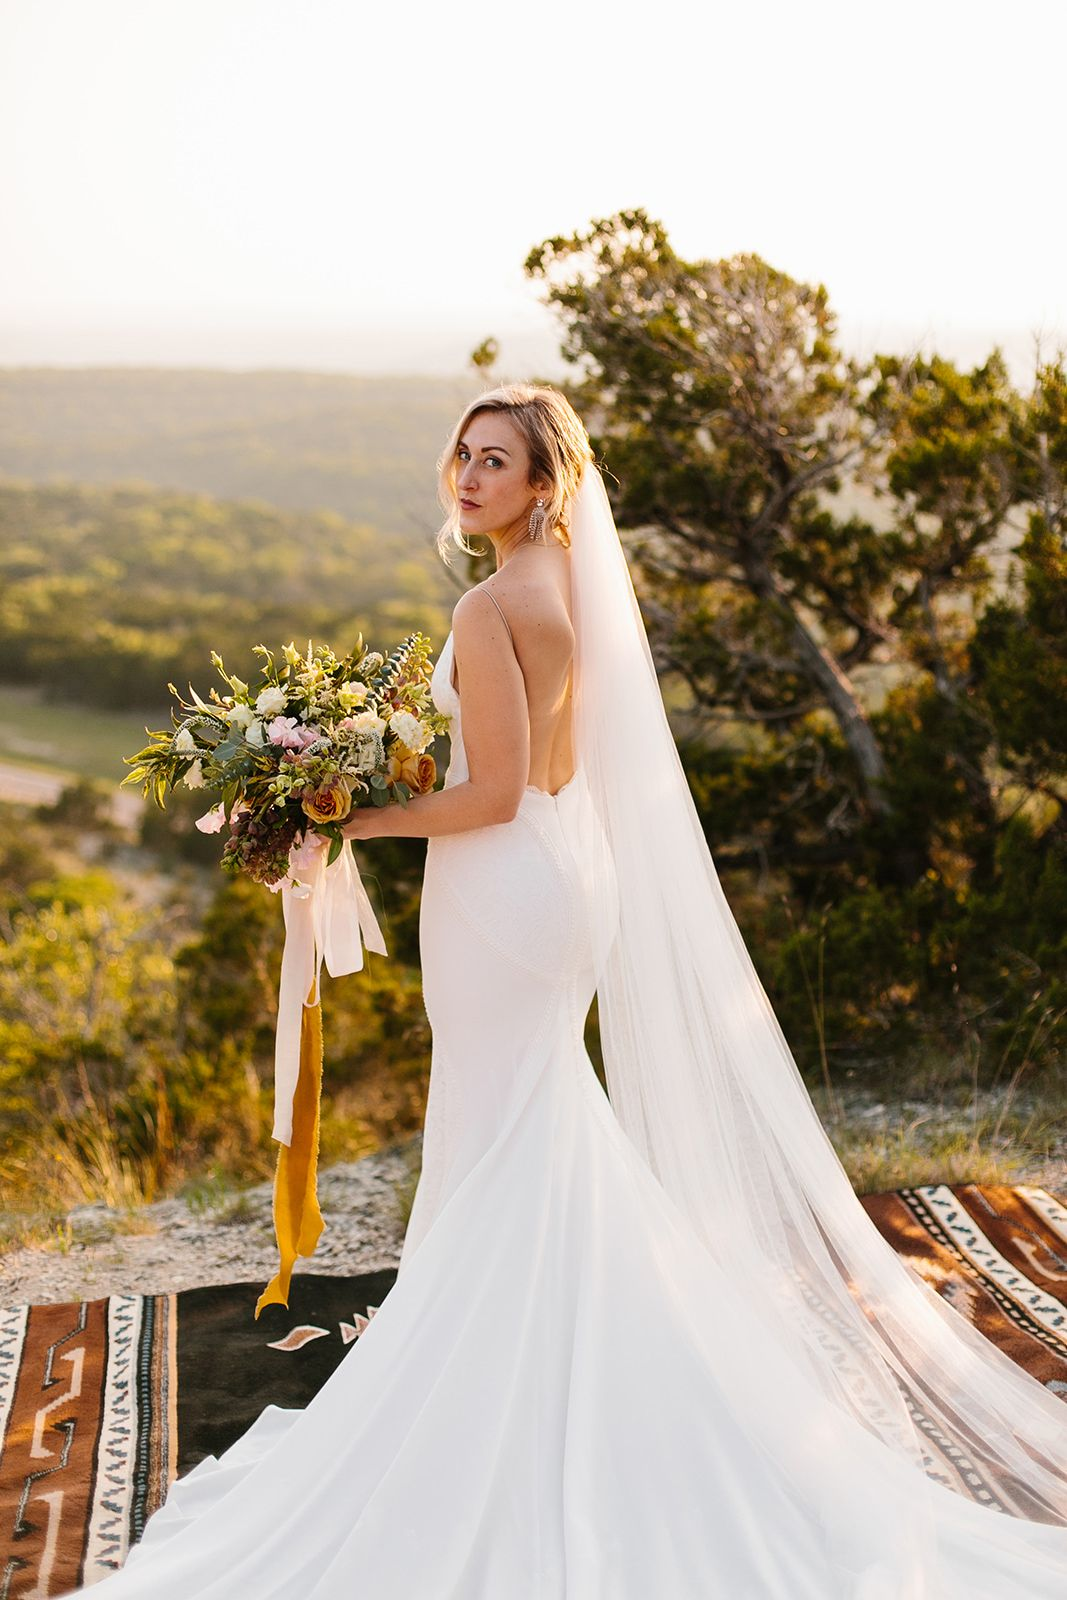 Becca Looks Gorgeous In Our Lsxgws Wyatt Gown From Her Austin Texas Wedding Rachel Meagan Photography Wedding Dresses Simple Wedding Dresses Bride Style